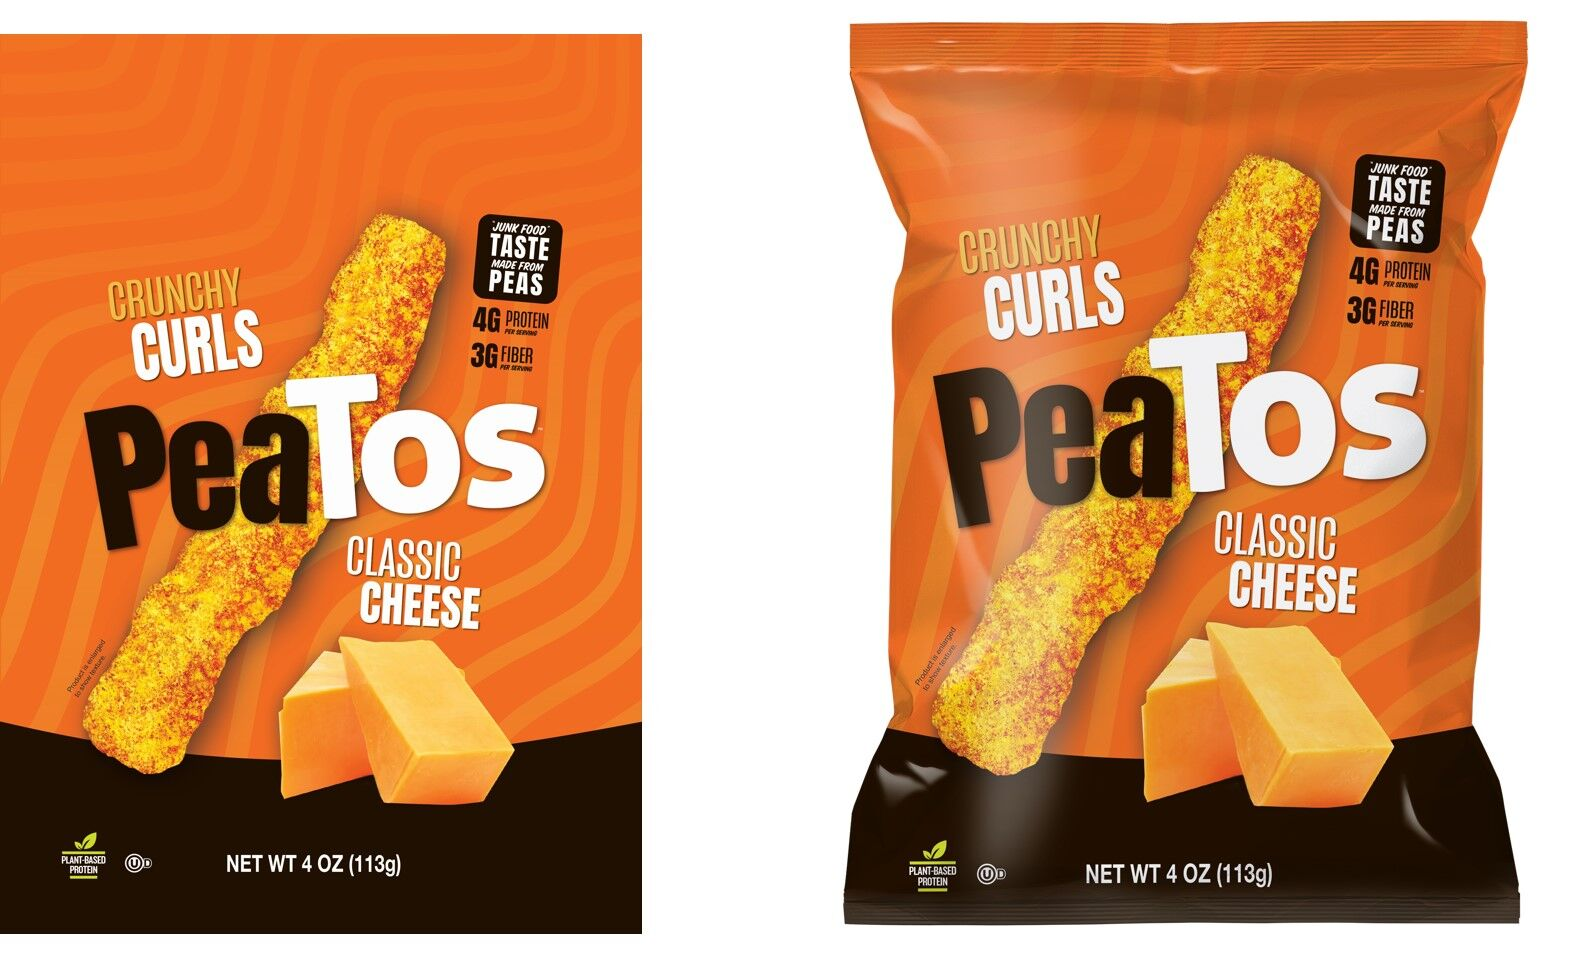 If healthy snack food is a competition, PeaTos wins the prize